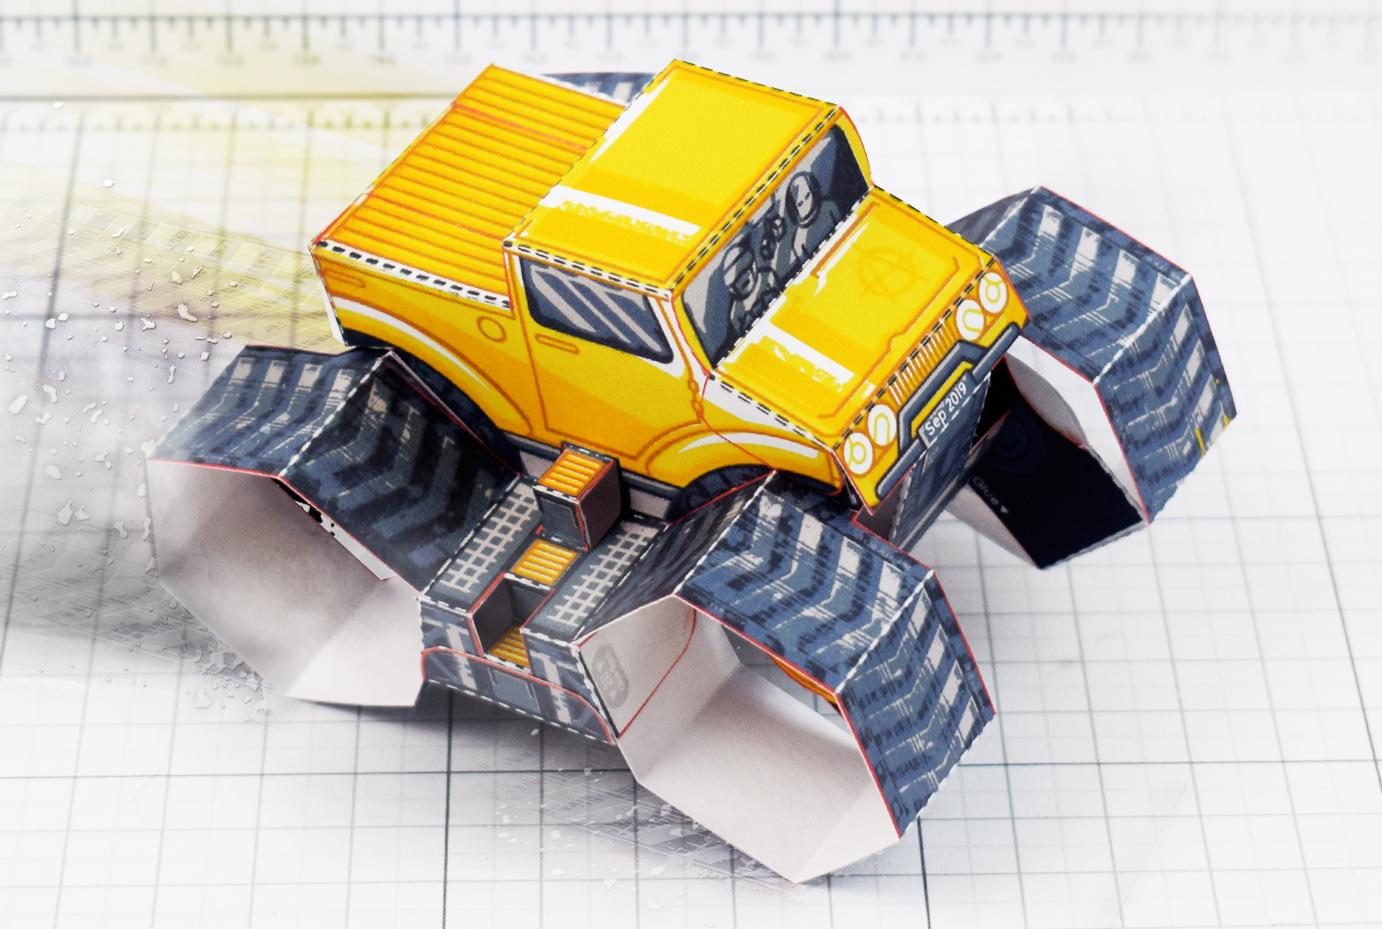 PTI - Tremor Truck Paper Toy Image - Main